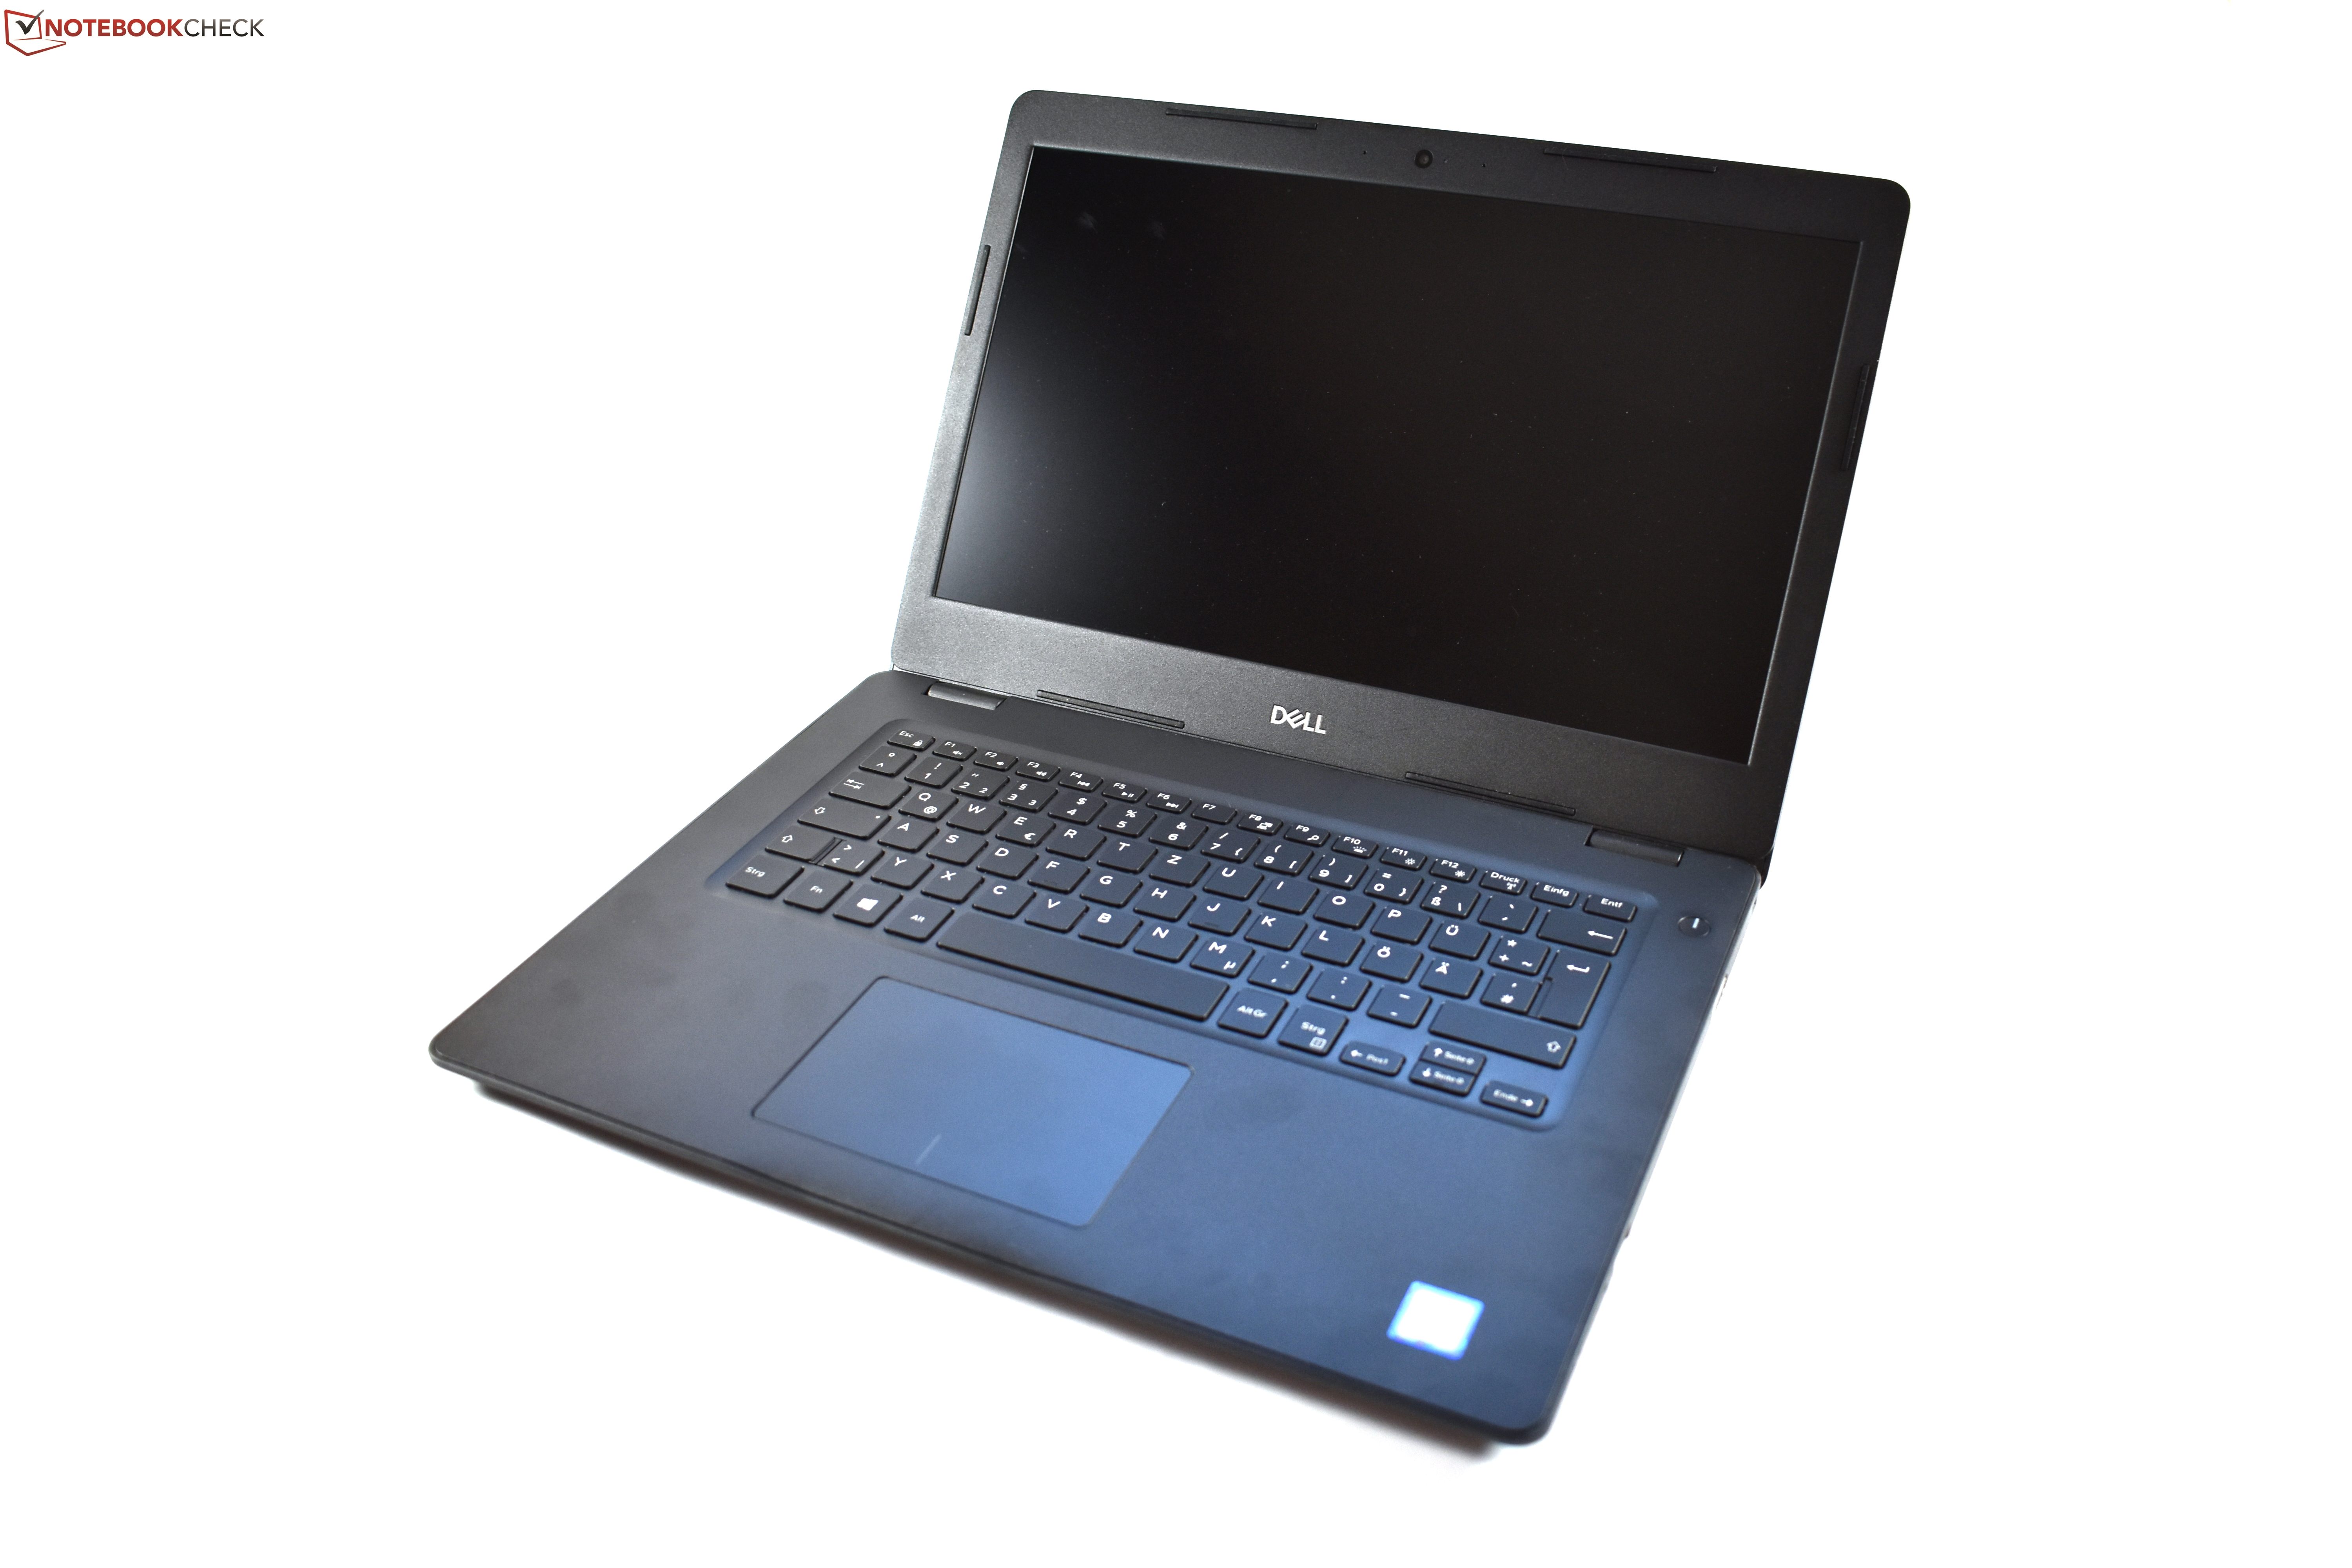 HP ENVY 13-1001xx Notebook Atheros WLAN Windows 8 Driver Download